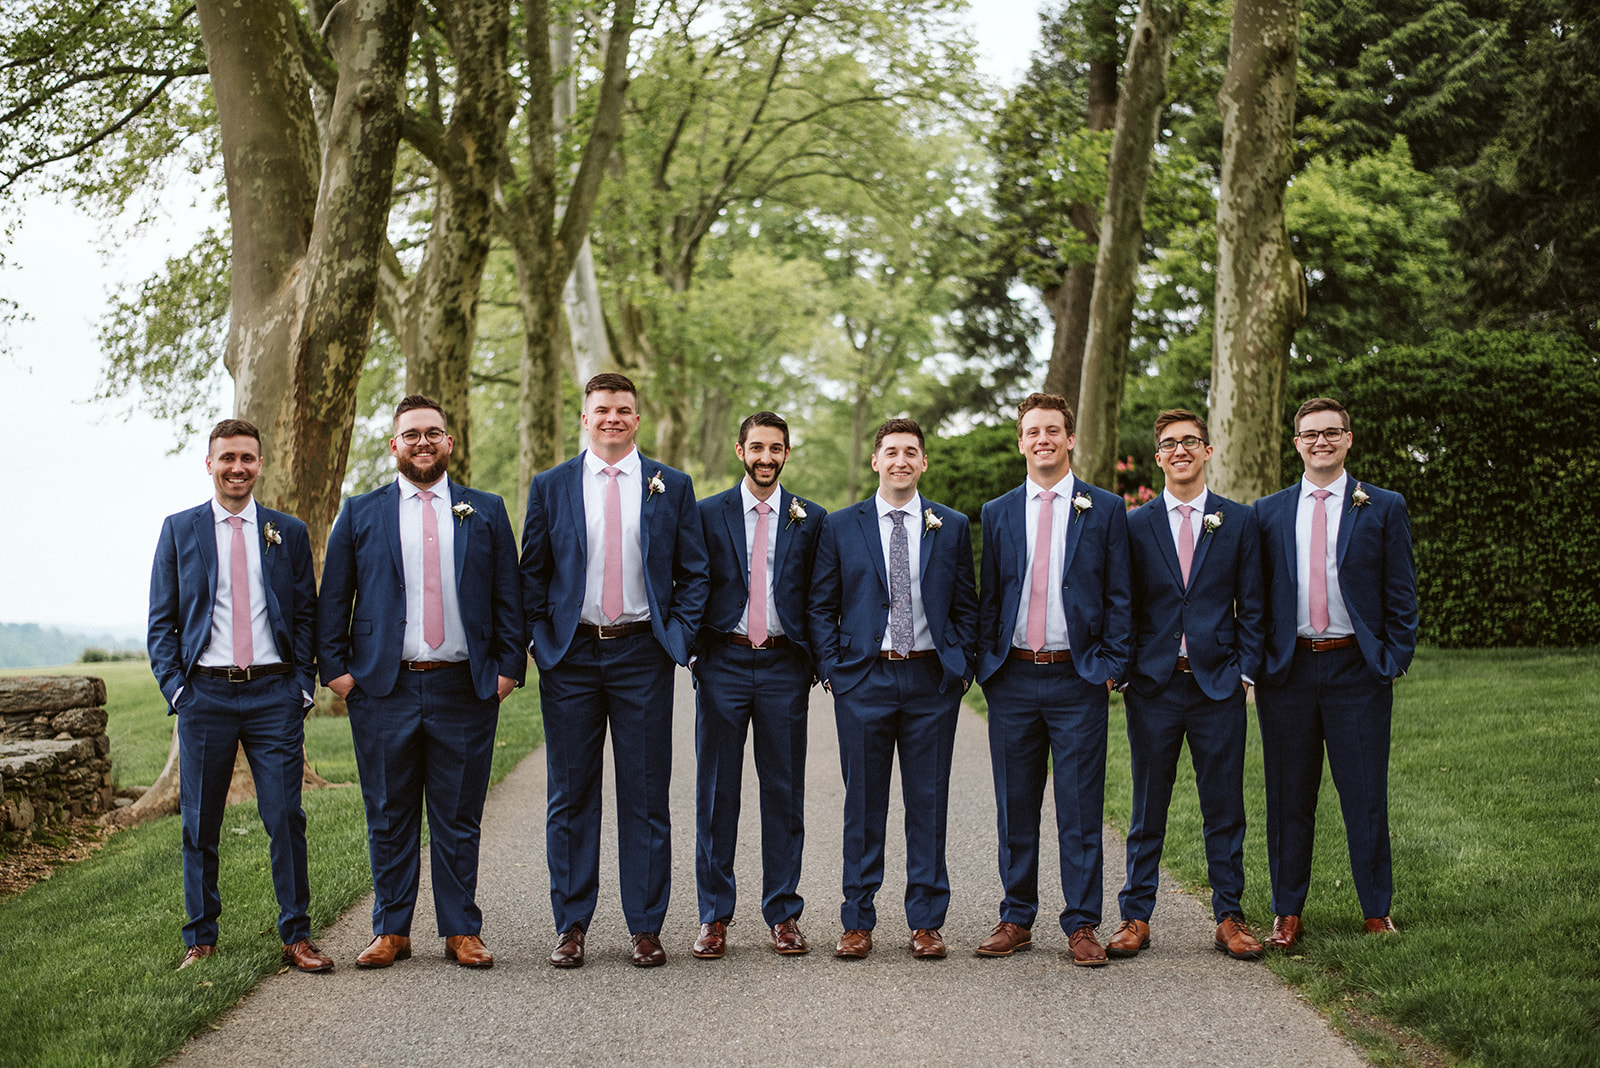 A groom and his groomsmen pose at their Drumore Estate wedding.